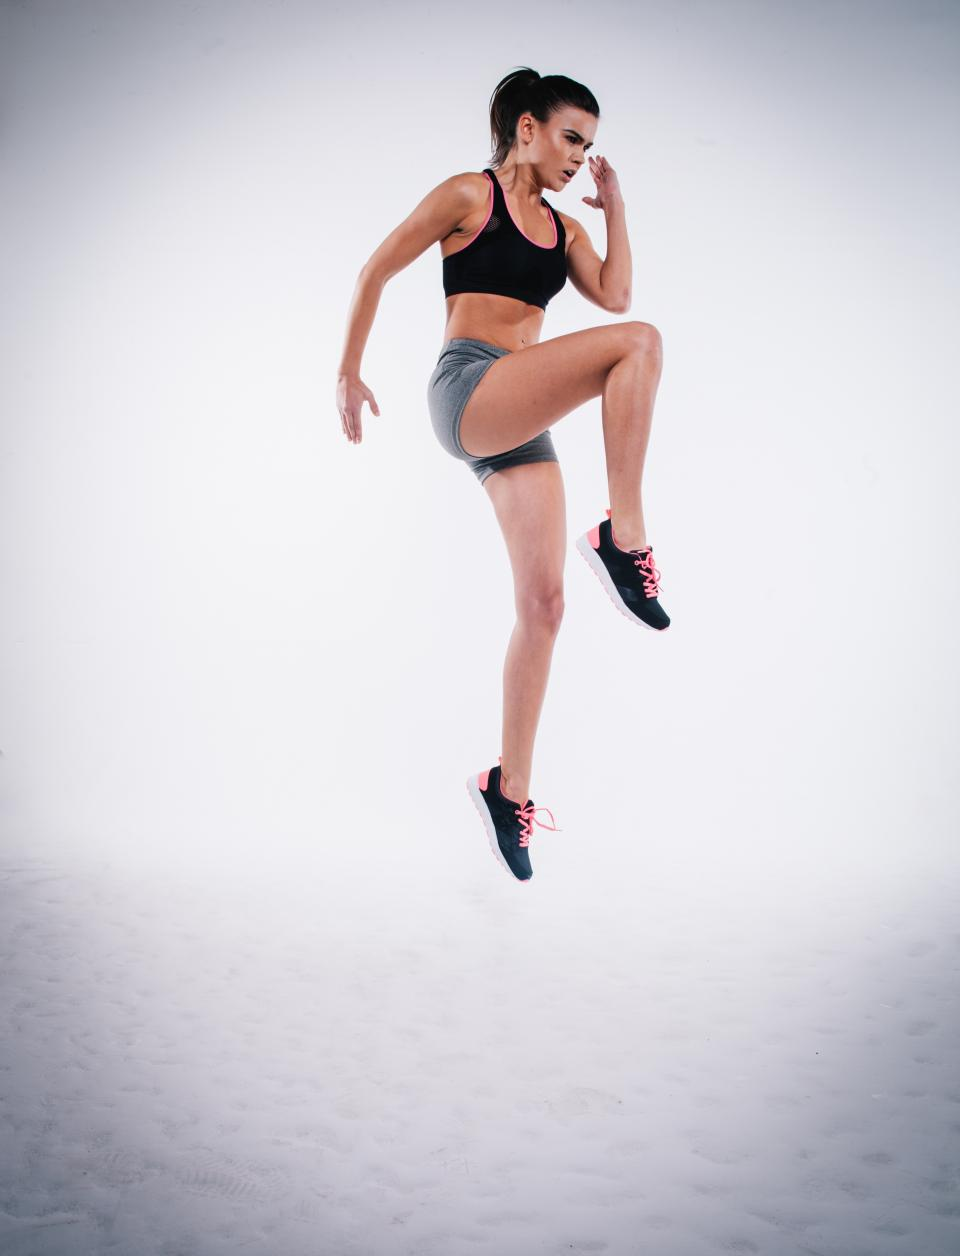 people woman exercise